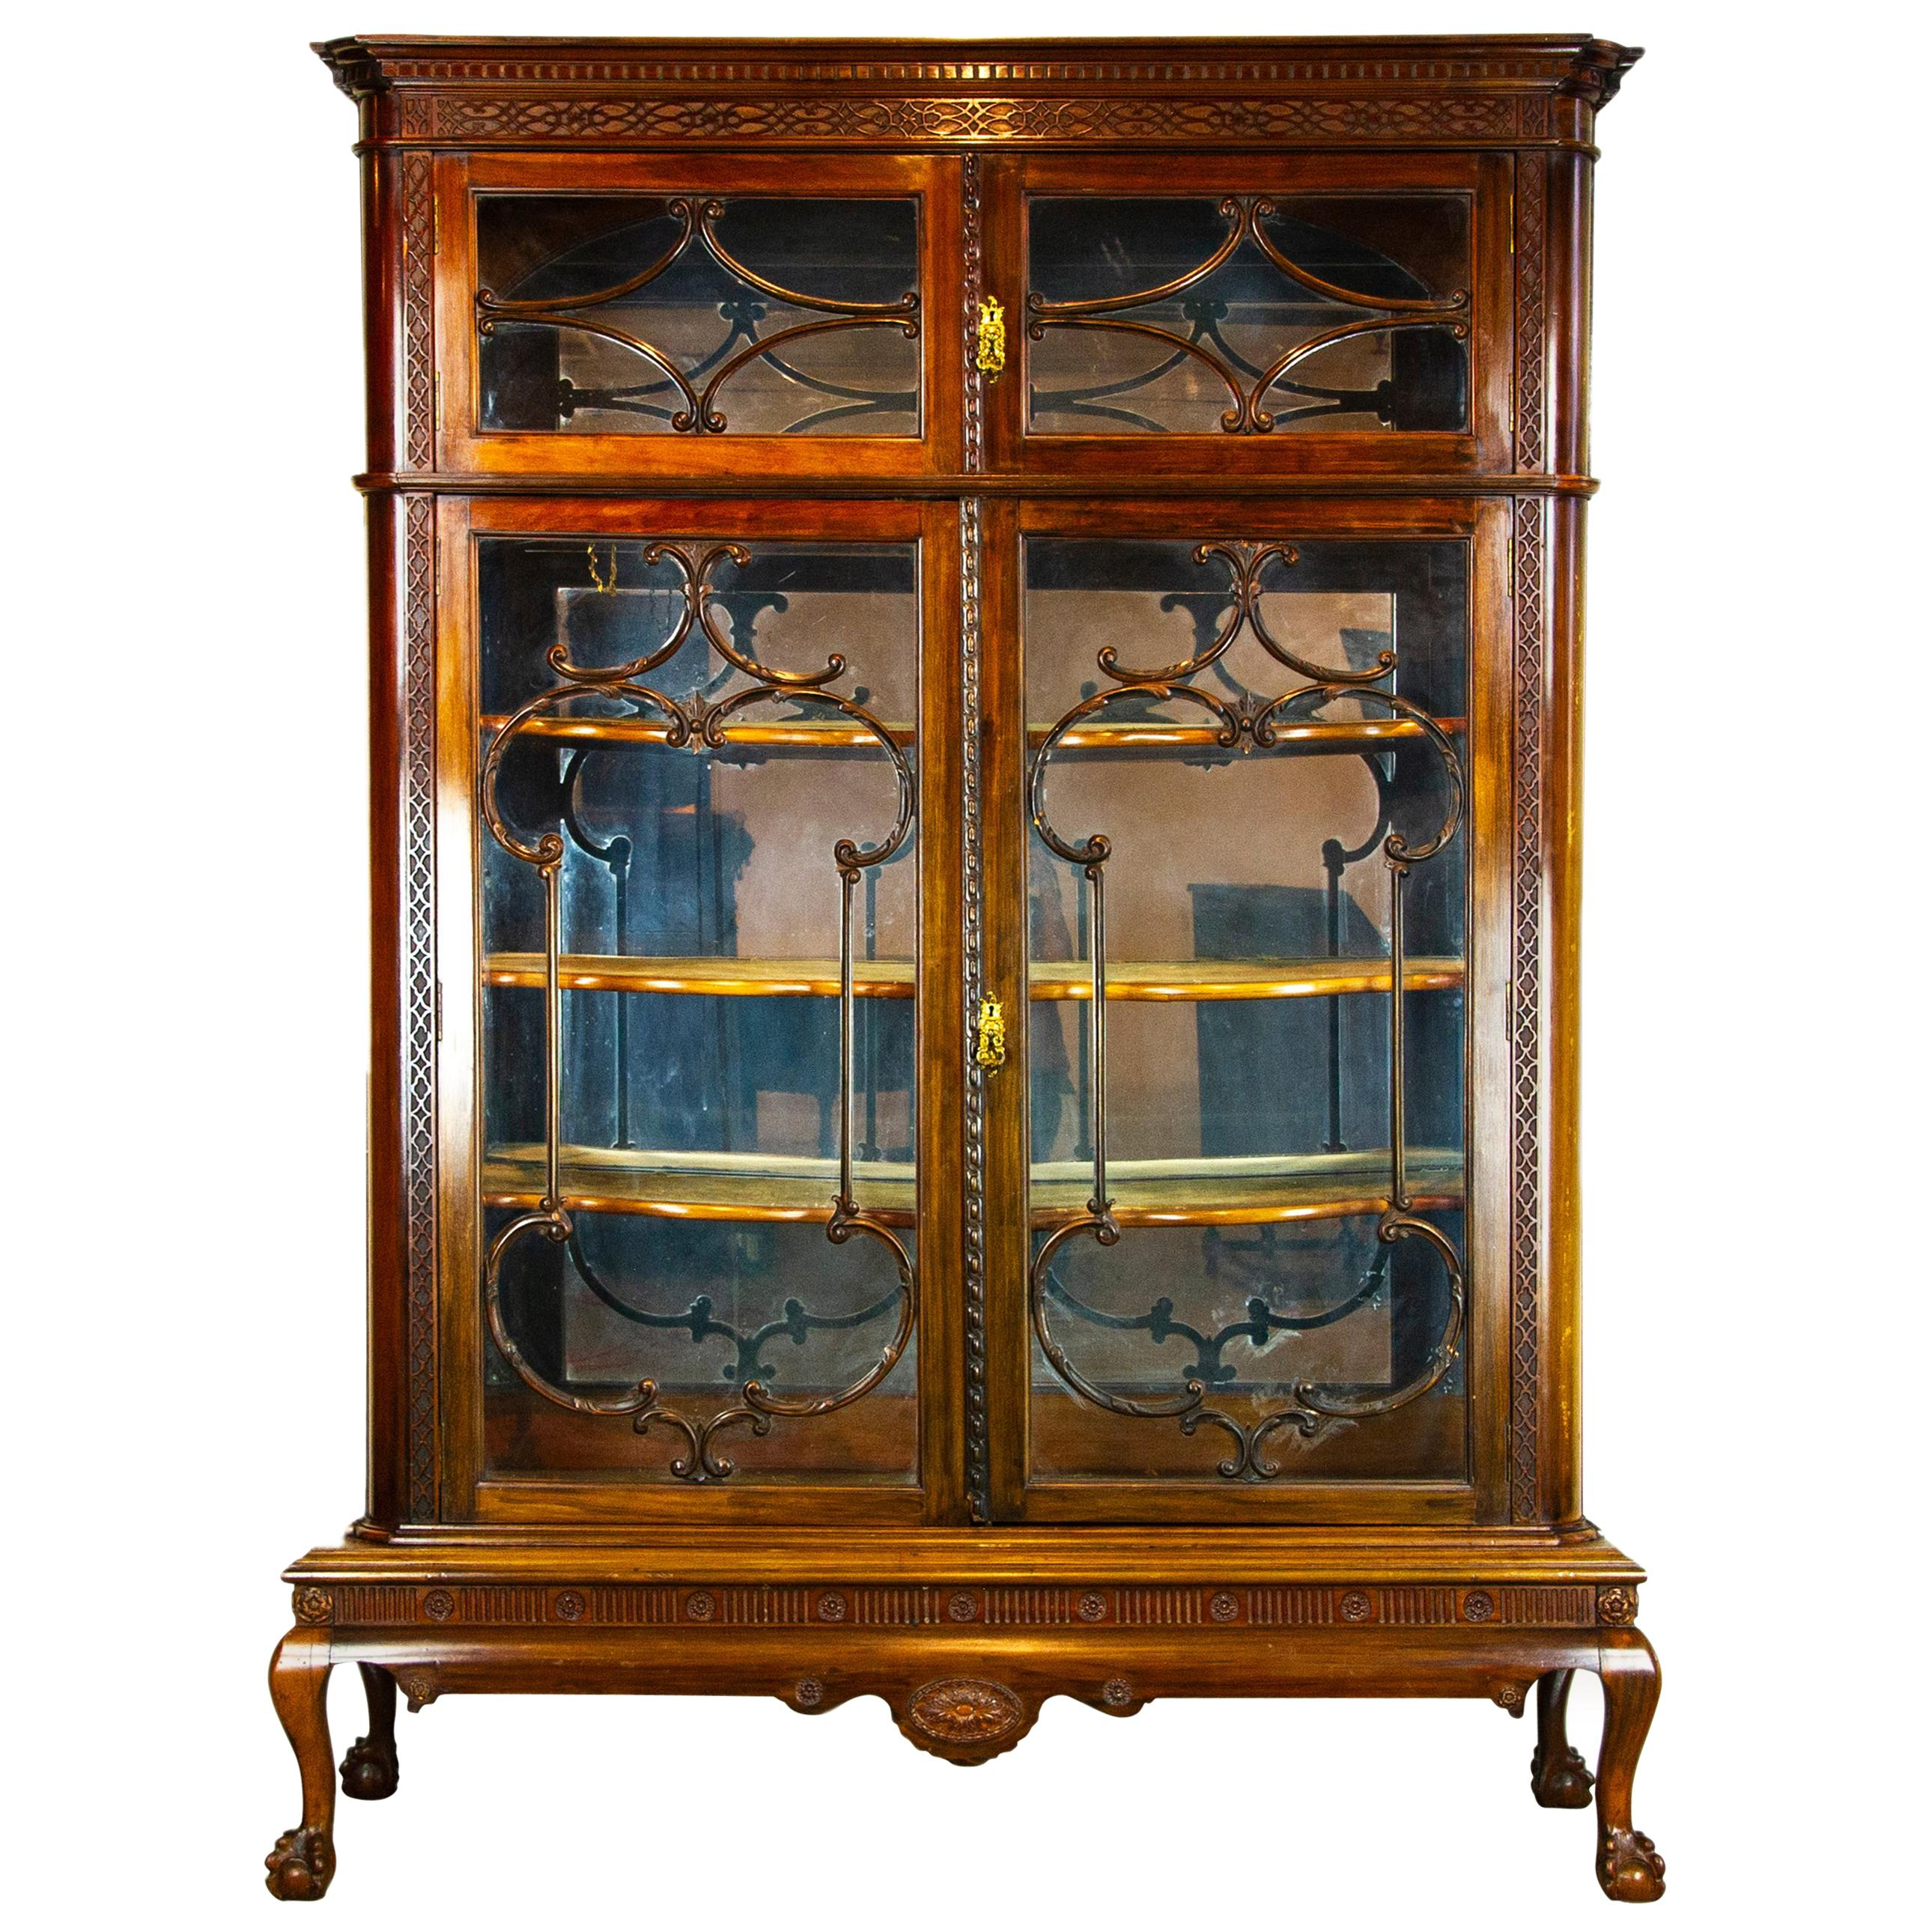 Delicieux Antique Display Cabinet, Walnut Display, China Cabinet, Scotland, 1920